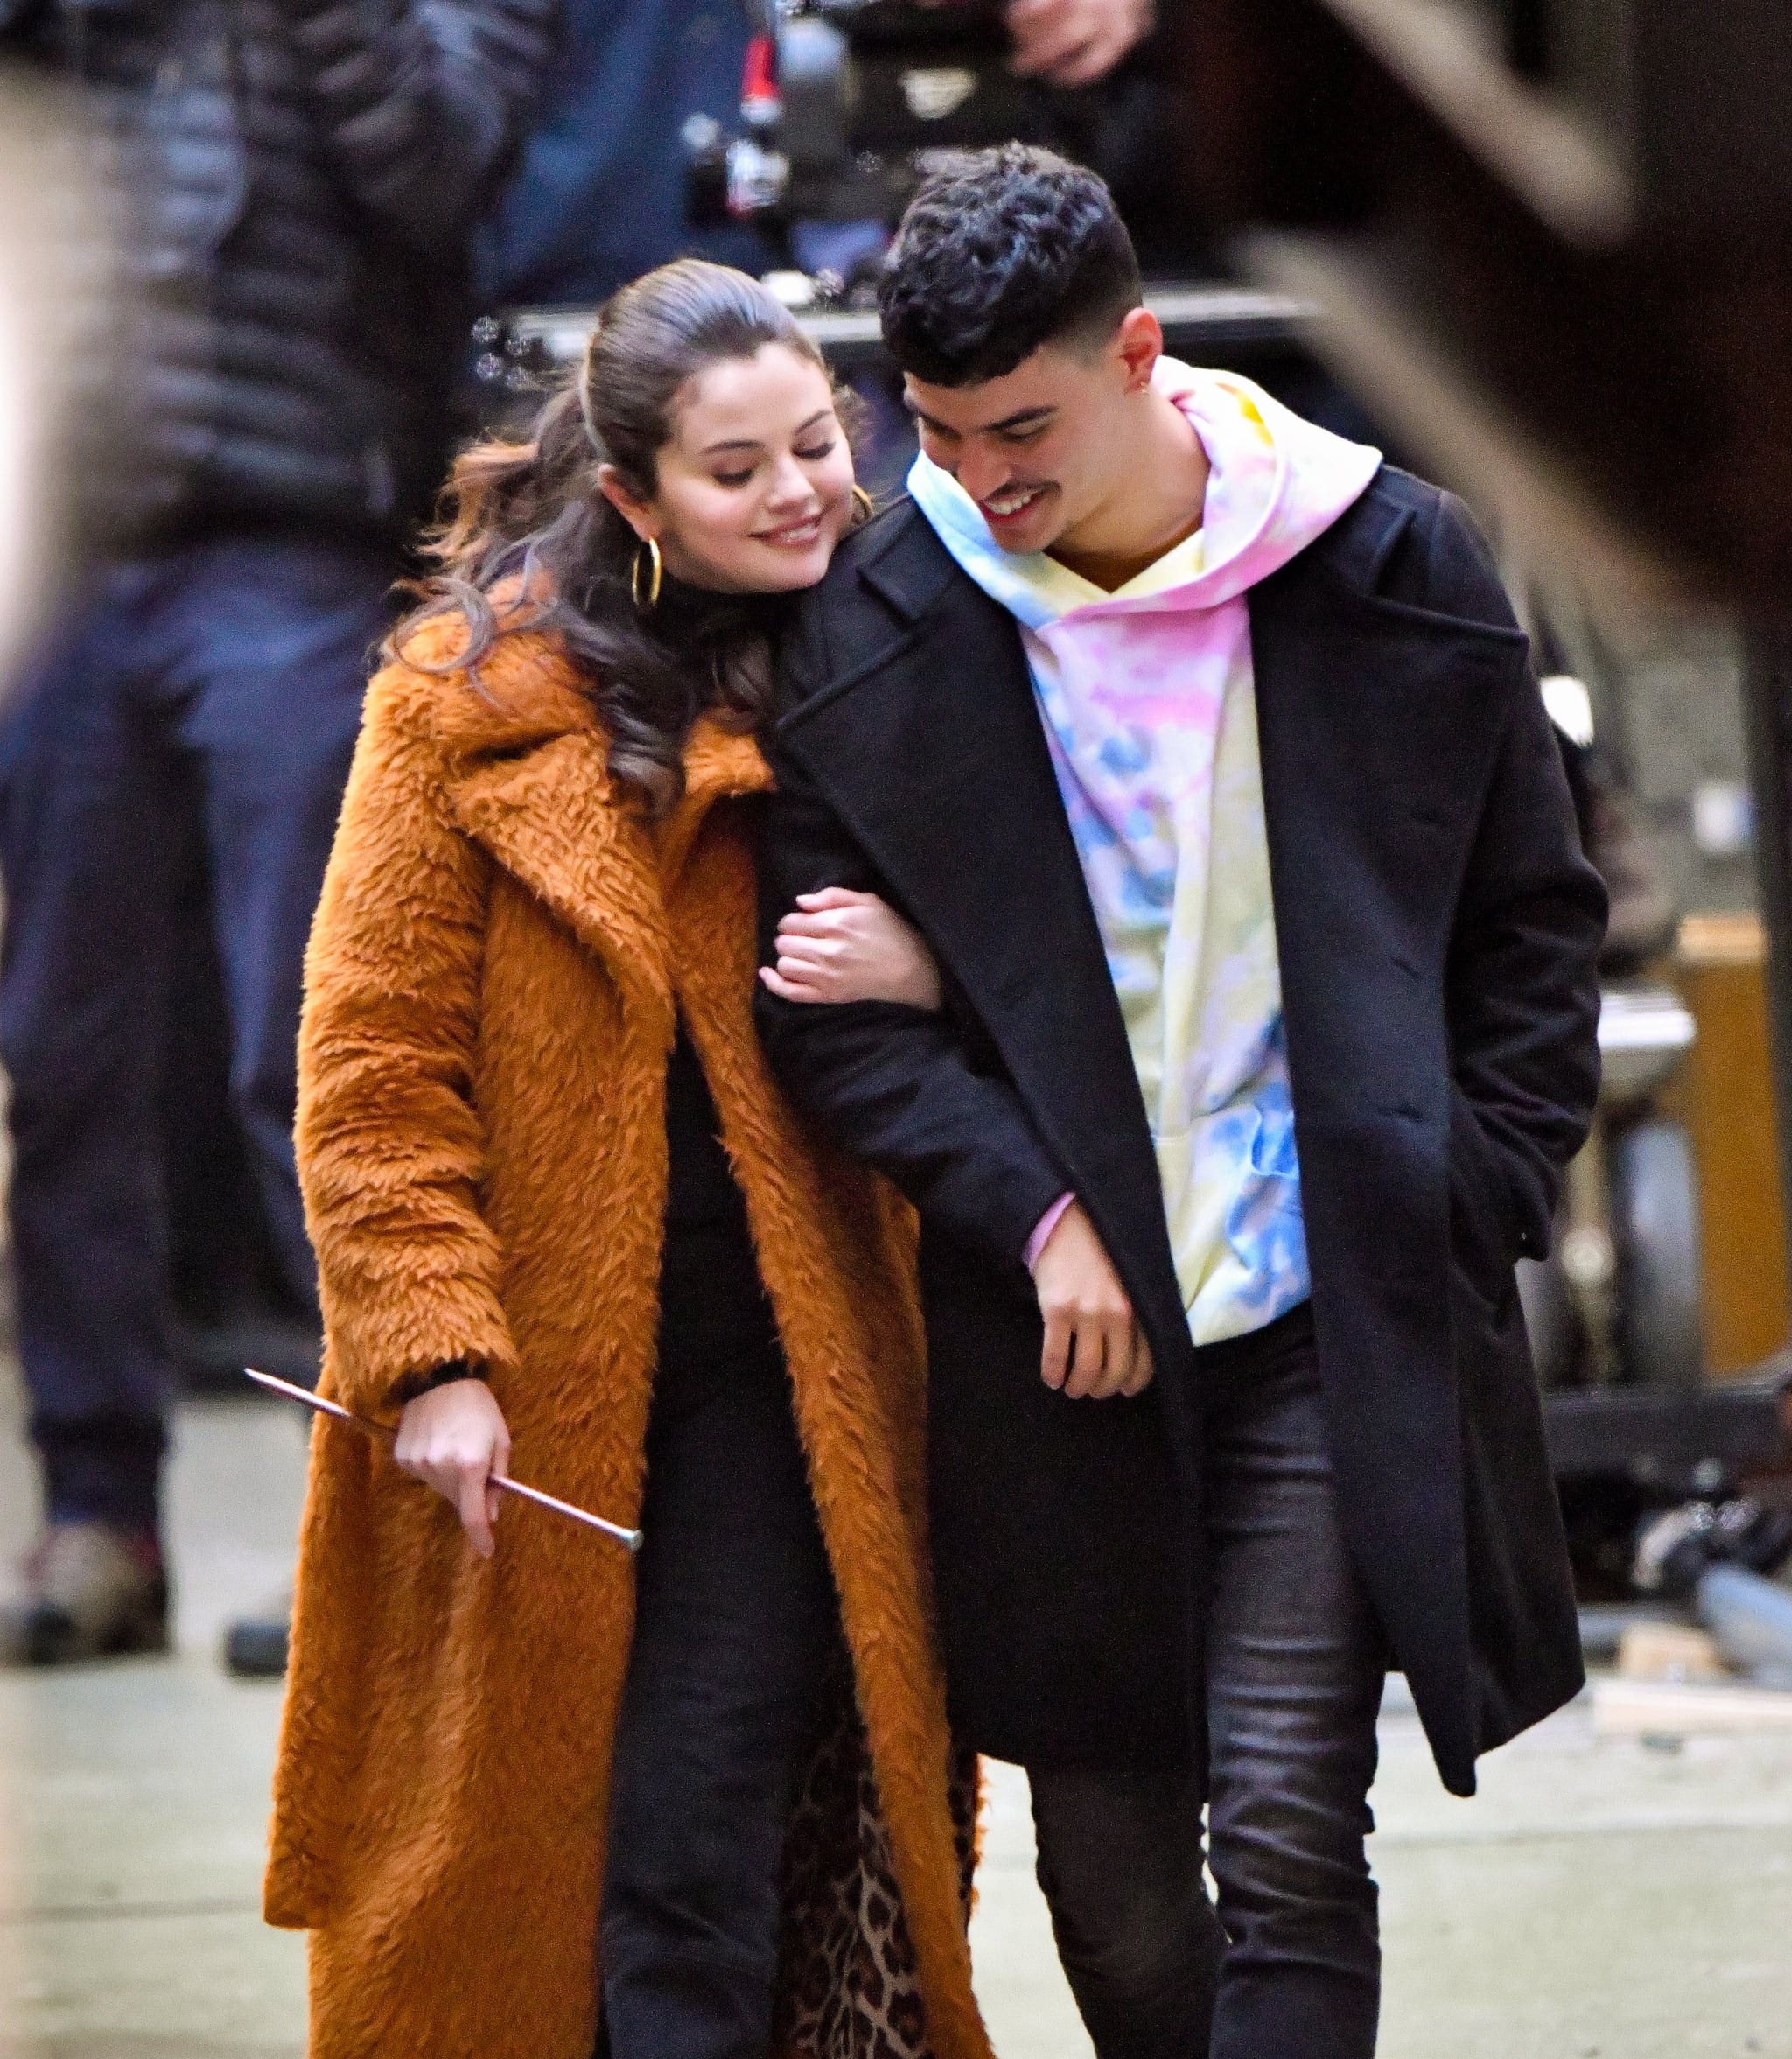 """NEW YORK, NY - FEBRUARY 24: Selena Gomez and Aaron Dominguez seen on the set of """"Only Murders in the Building"""" in Manhattan on February 24, 2021 in New York City. (Photo by James Devaney / GC Images)"""